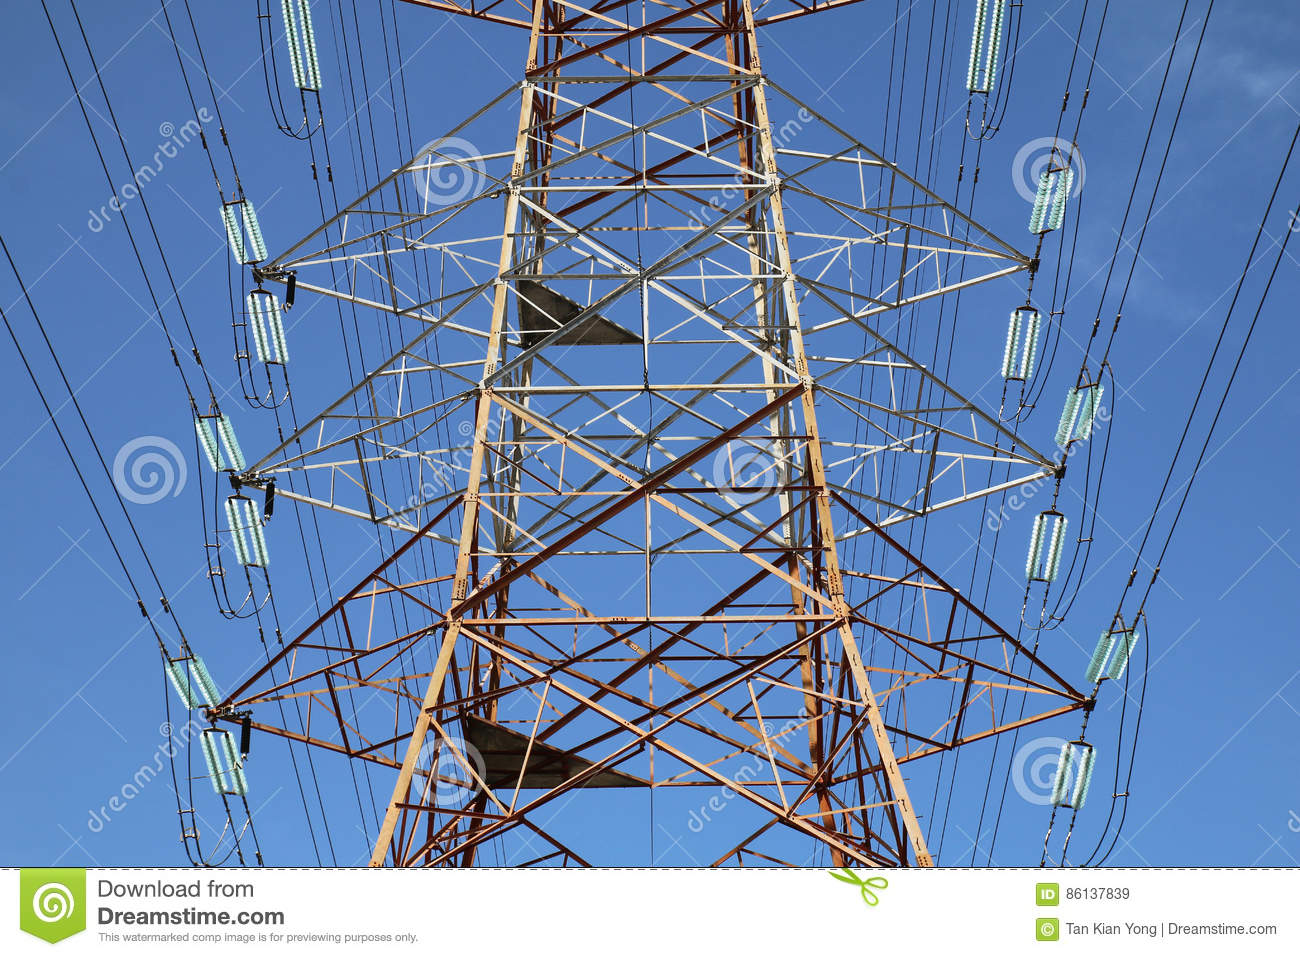 Grid electricity transmission tower